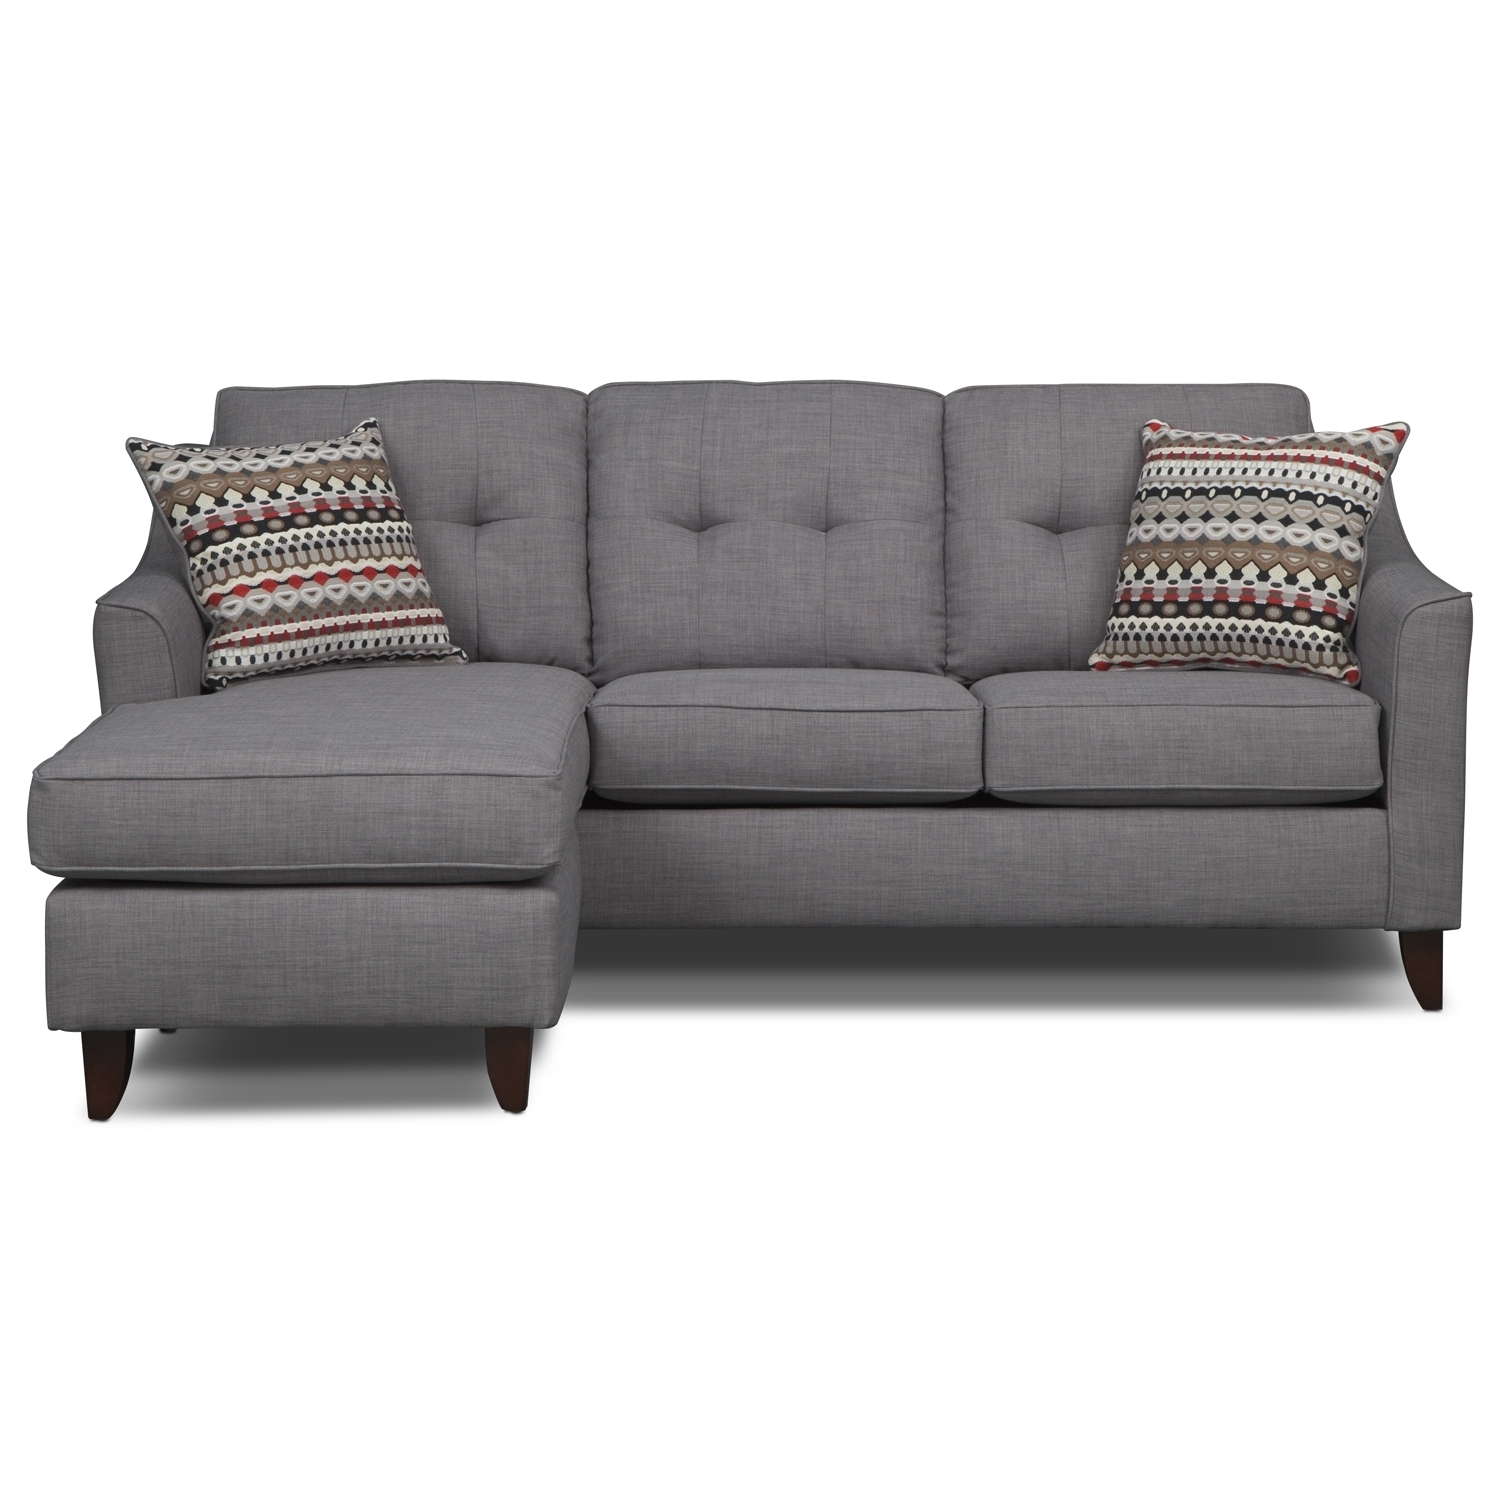 Couches With Chaise For 2017 Sofa: Unique Cheap Chaise Sofa Cheap Chaise Lounge, Couches Ikea (View 12 of 15)